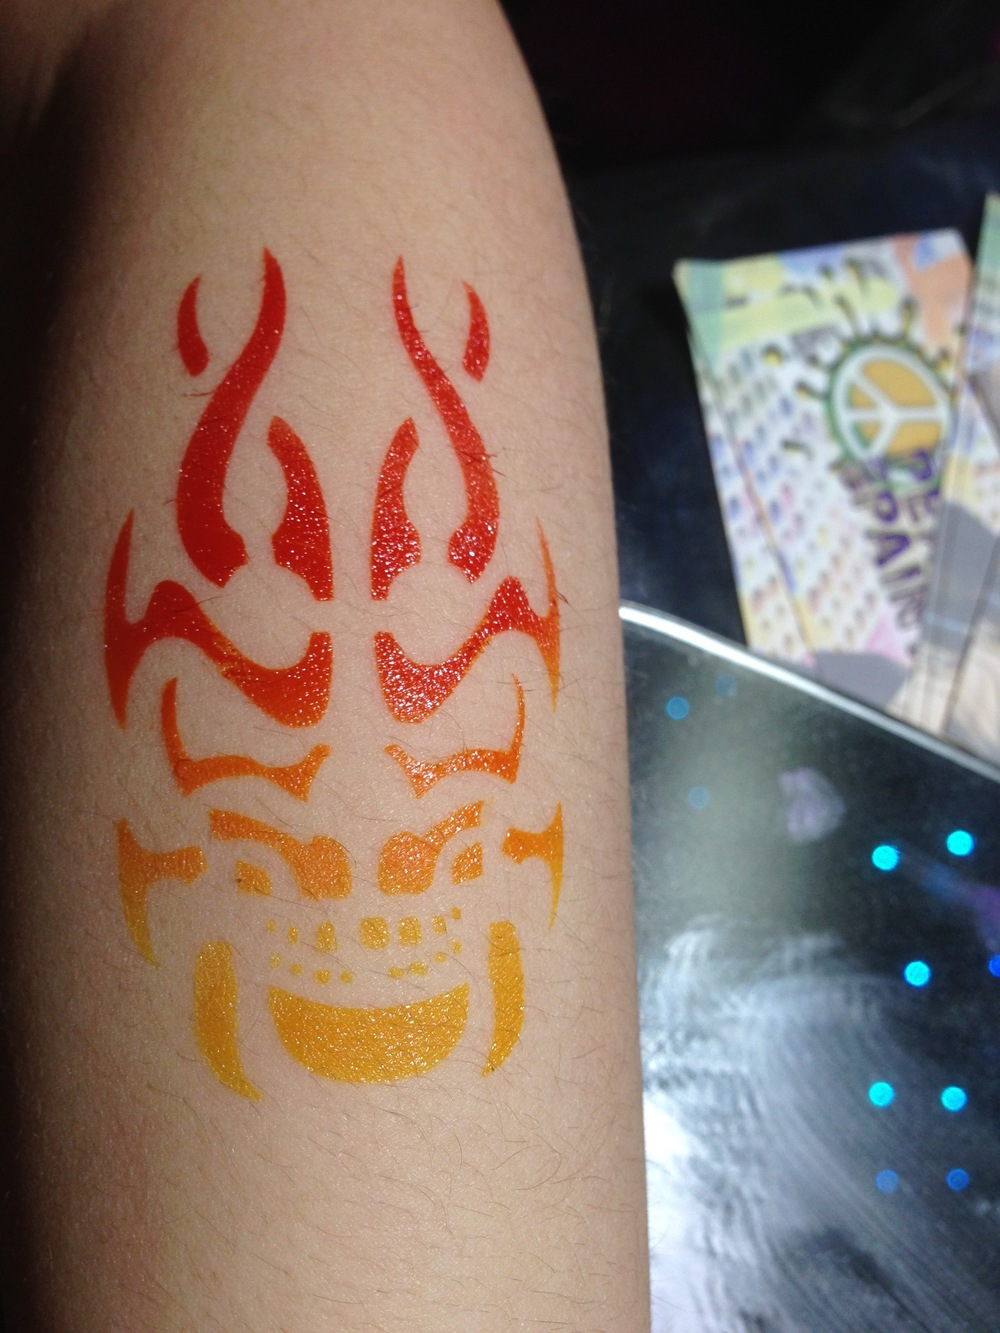 Gallery - Airbrush Tattoo flame face.jpg